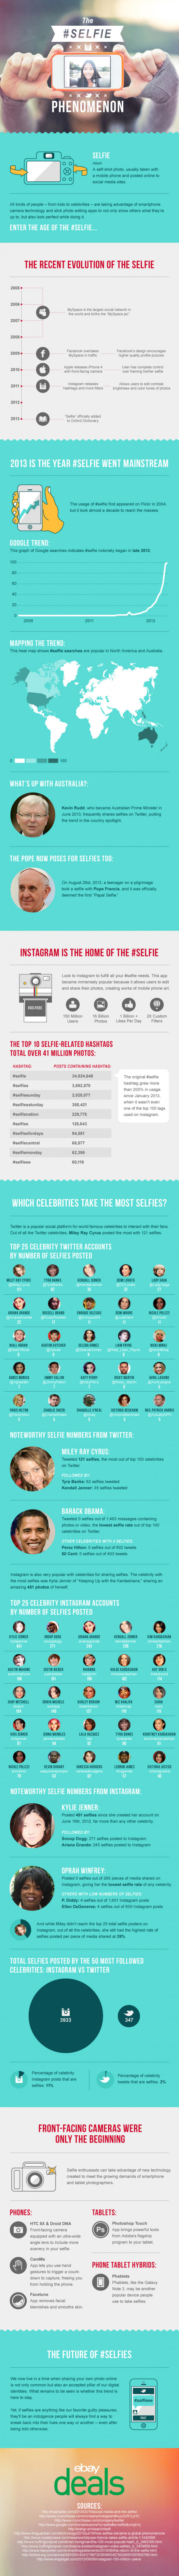 The #Selfie Phenomenon